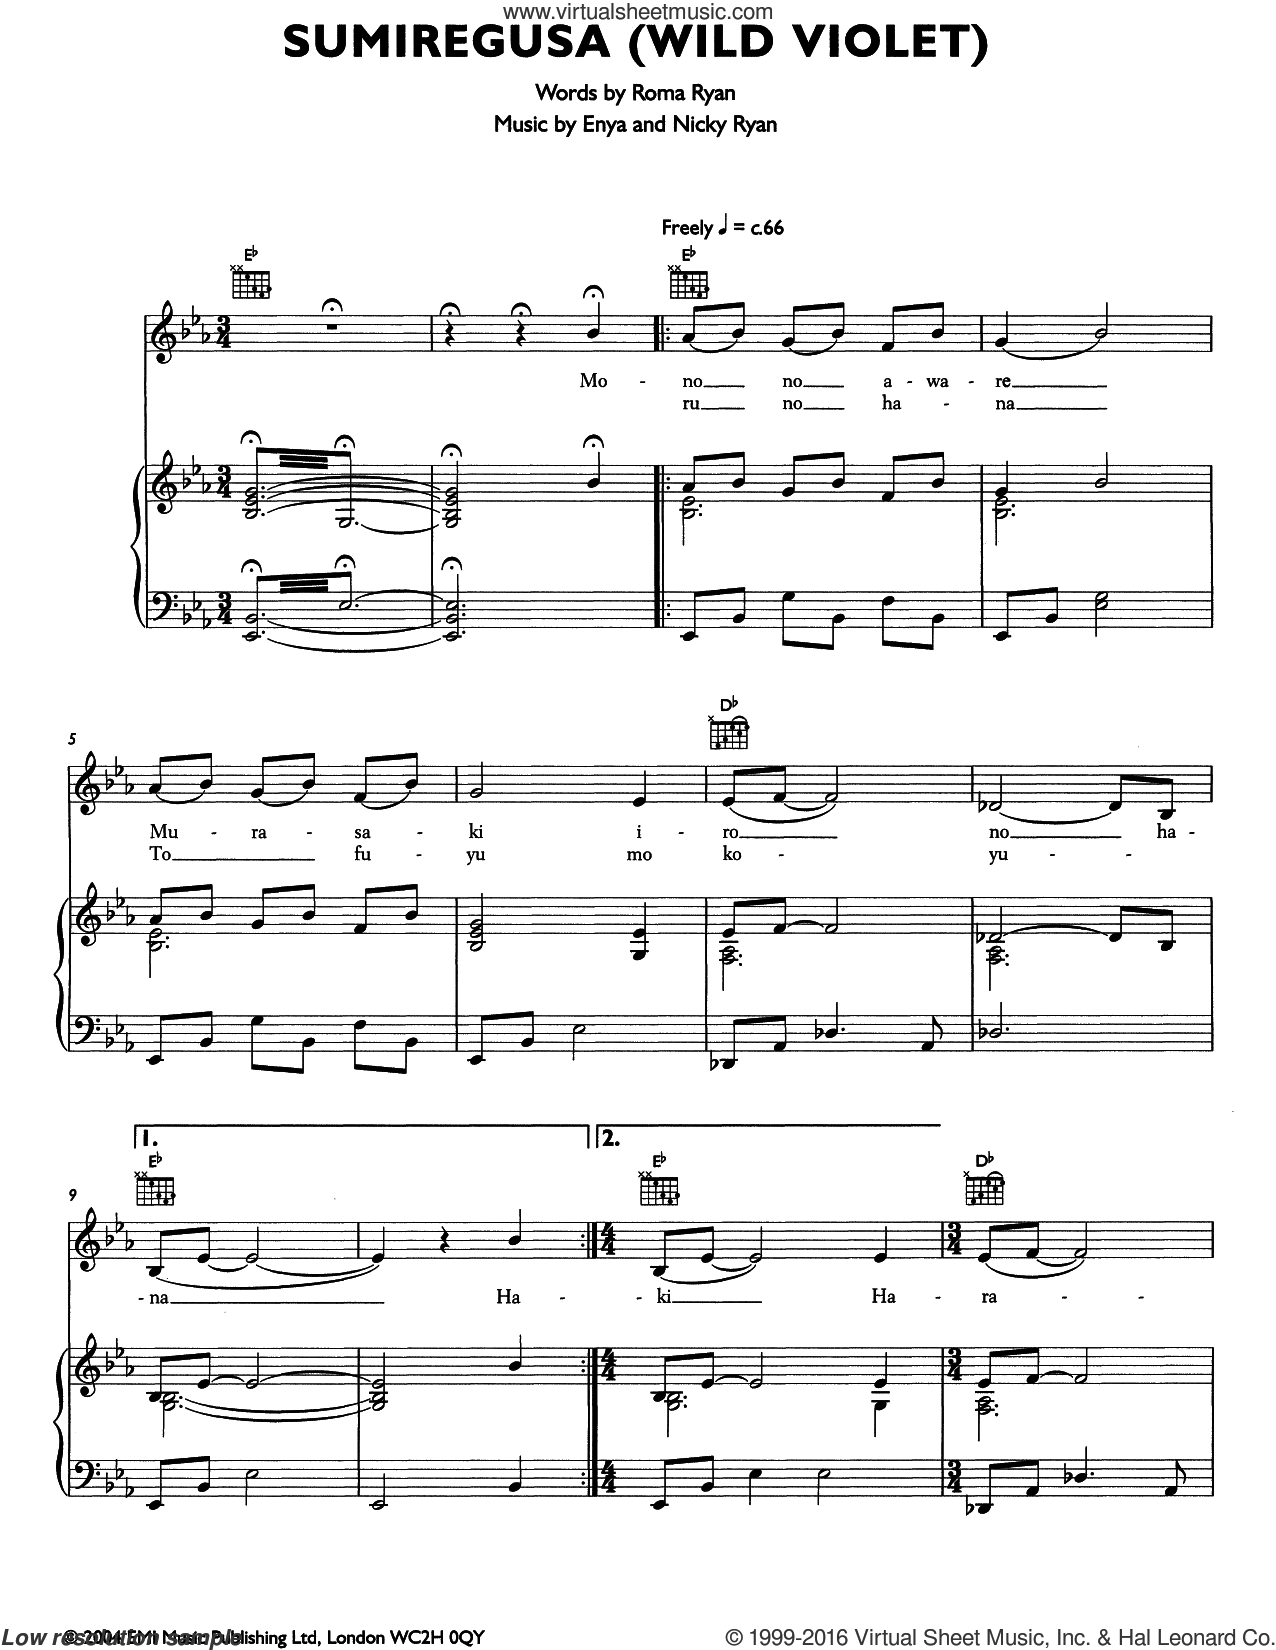 Semiregusa (Wild Violet) sheet music for voice, piano or guitar by Enya. Score Image Preview.